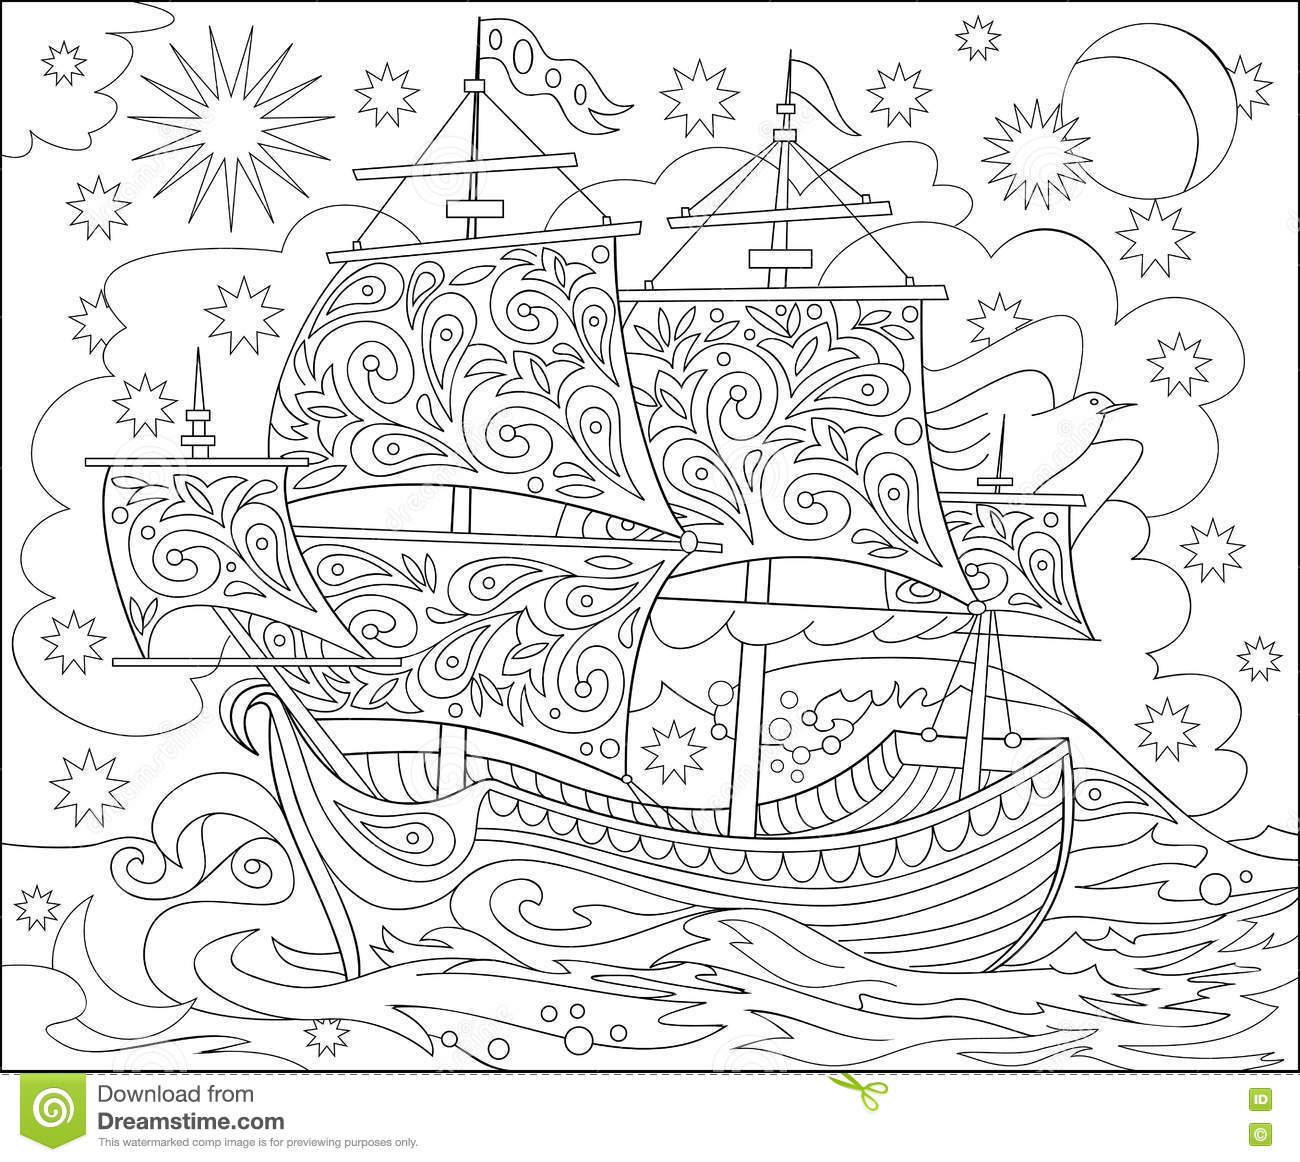 Page With Black And White Illustration Of Fantasy Fairyland Ship For Coloring Worksheet For